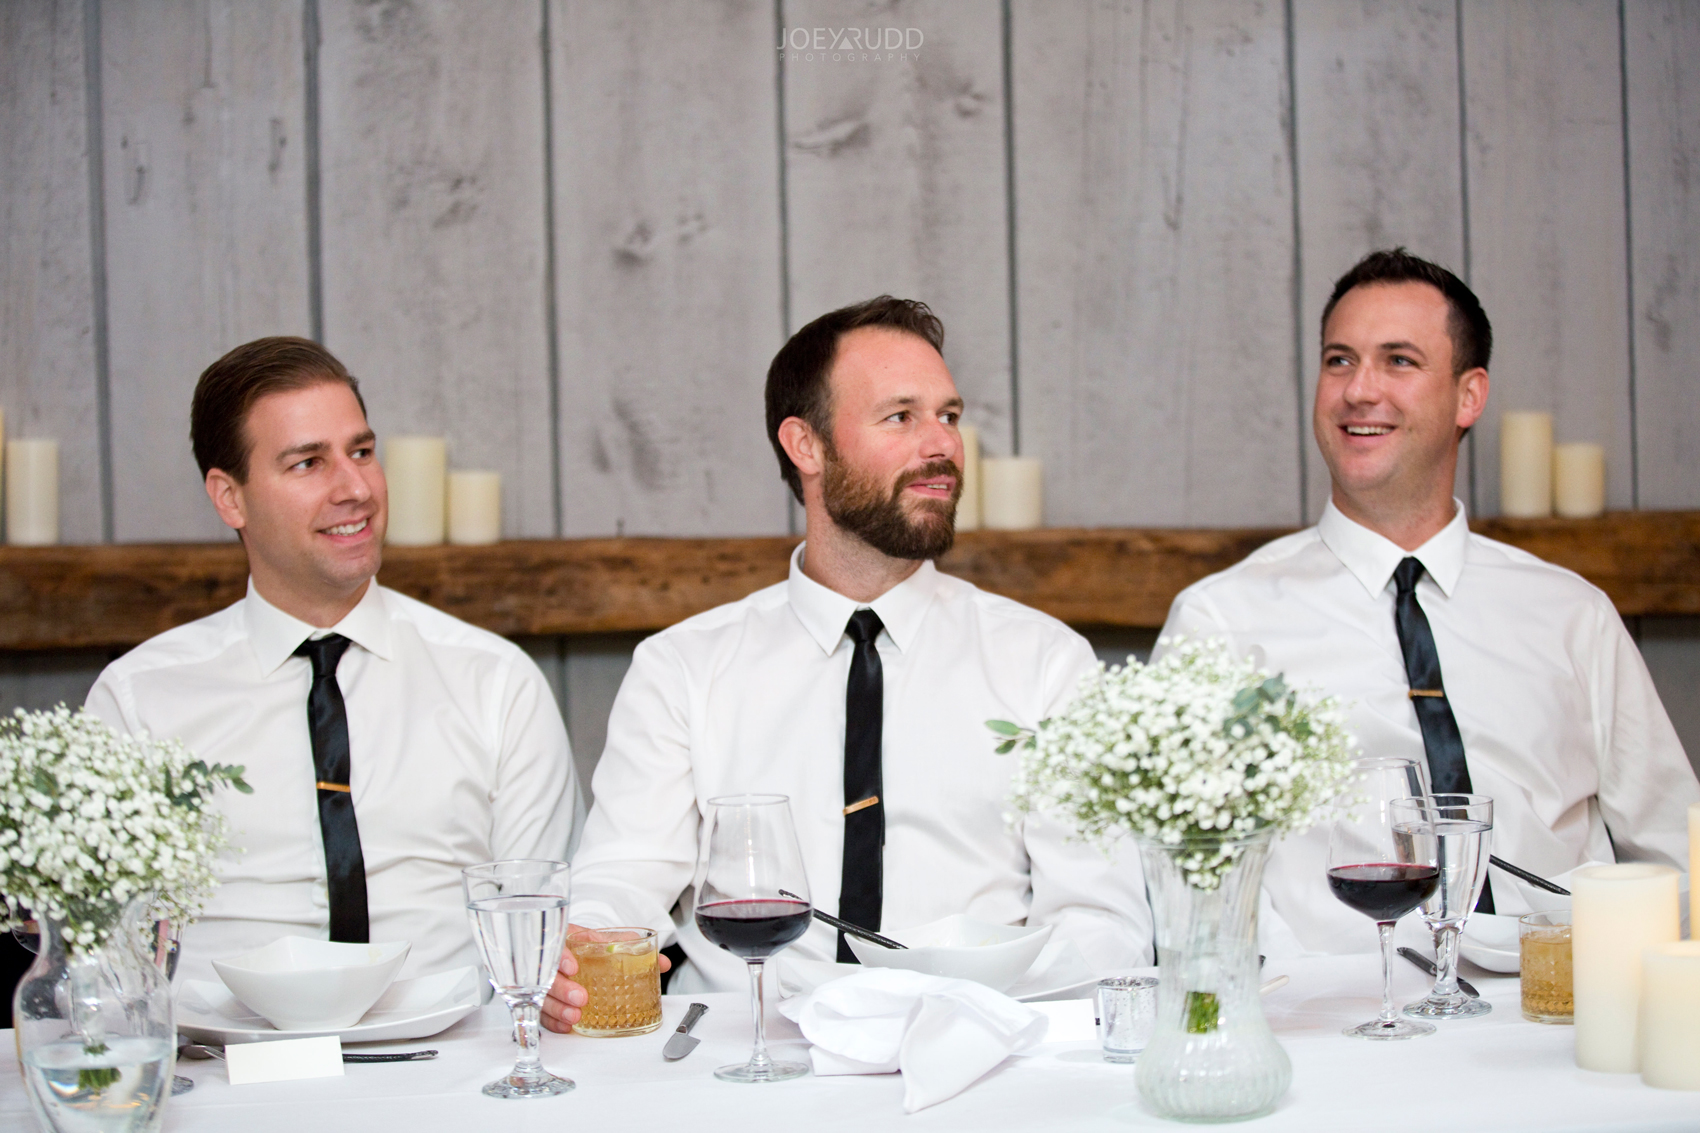 2018_10_07---Aksana-&-Mark-714TopRight.jpgEvermore Wedding, Evermore Wedding and Events, Ottawa Wedding, Almonte Wedding, Ottawa Photographer, Wedding Photography, Wedding Photographer, Joey Rudd Photography, Farm Wedding, Rustic Wedding, Barn Wedding Venue, Wedding Venue, Ottawa Wedding Venue, Almonte Riverside Inn, Candid, reception, groomsmen